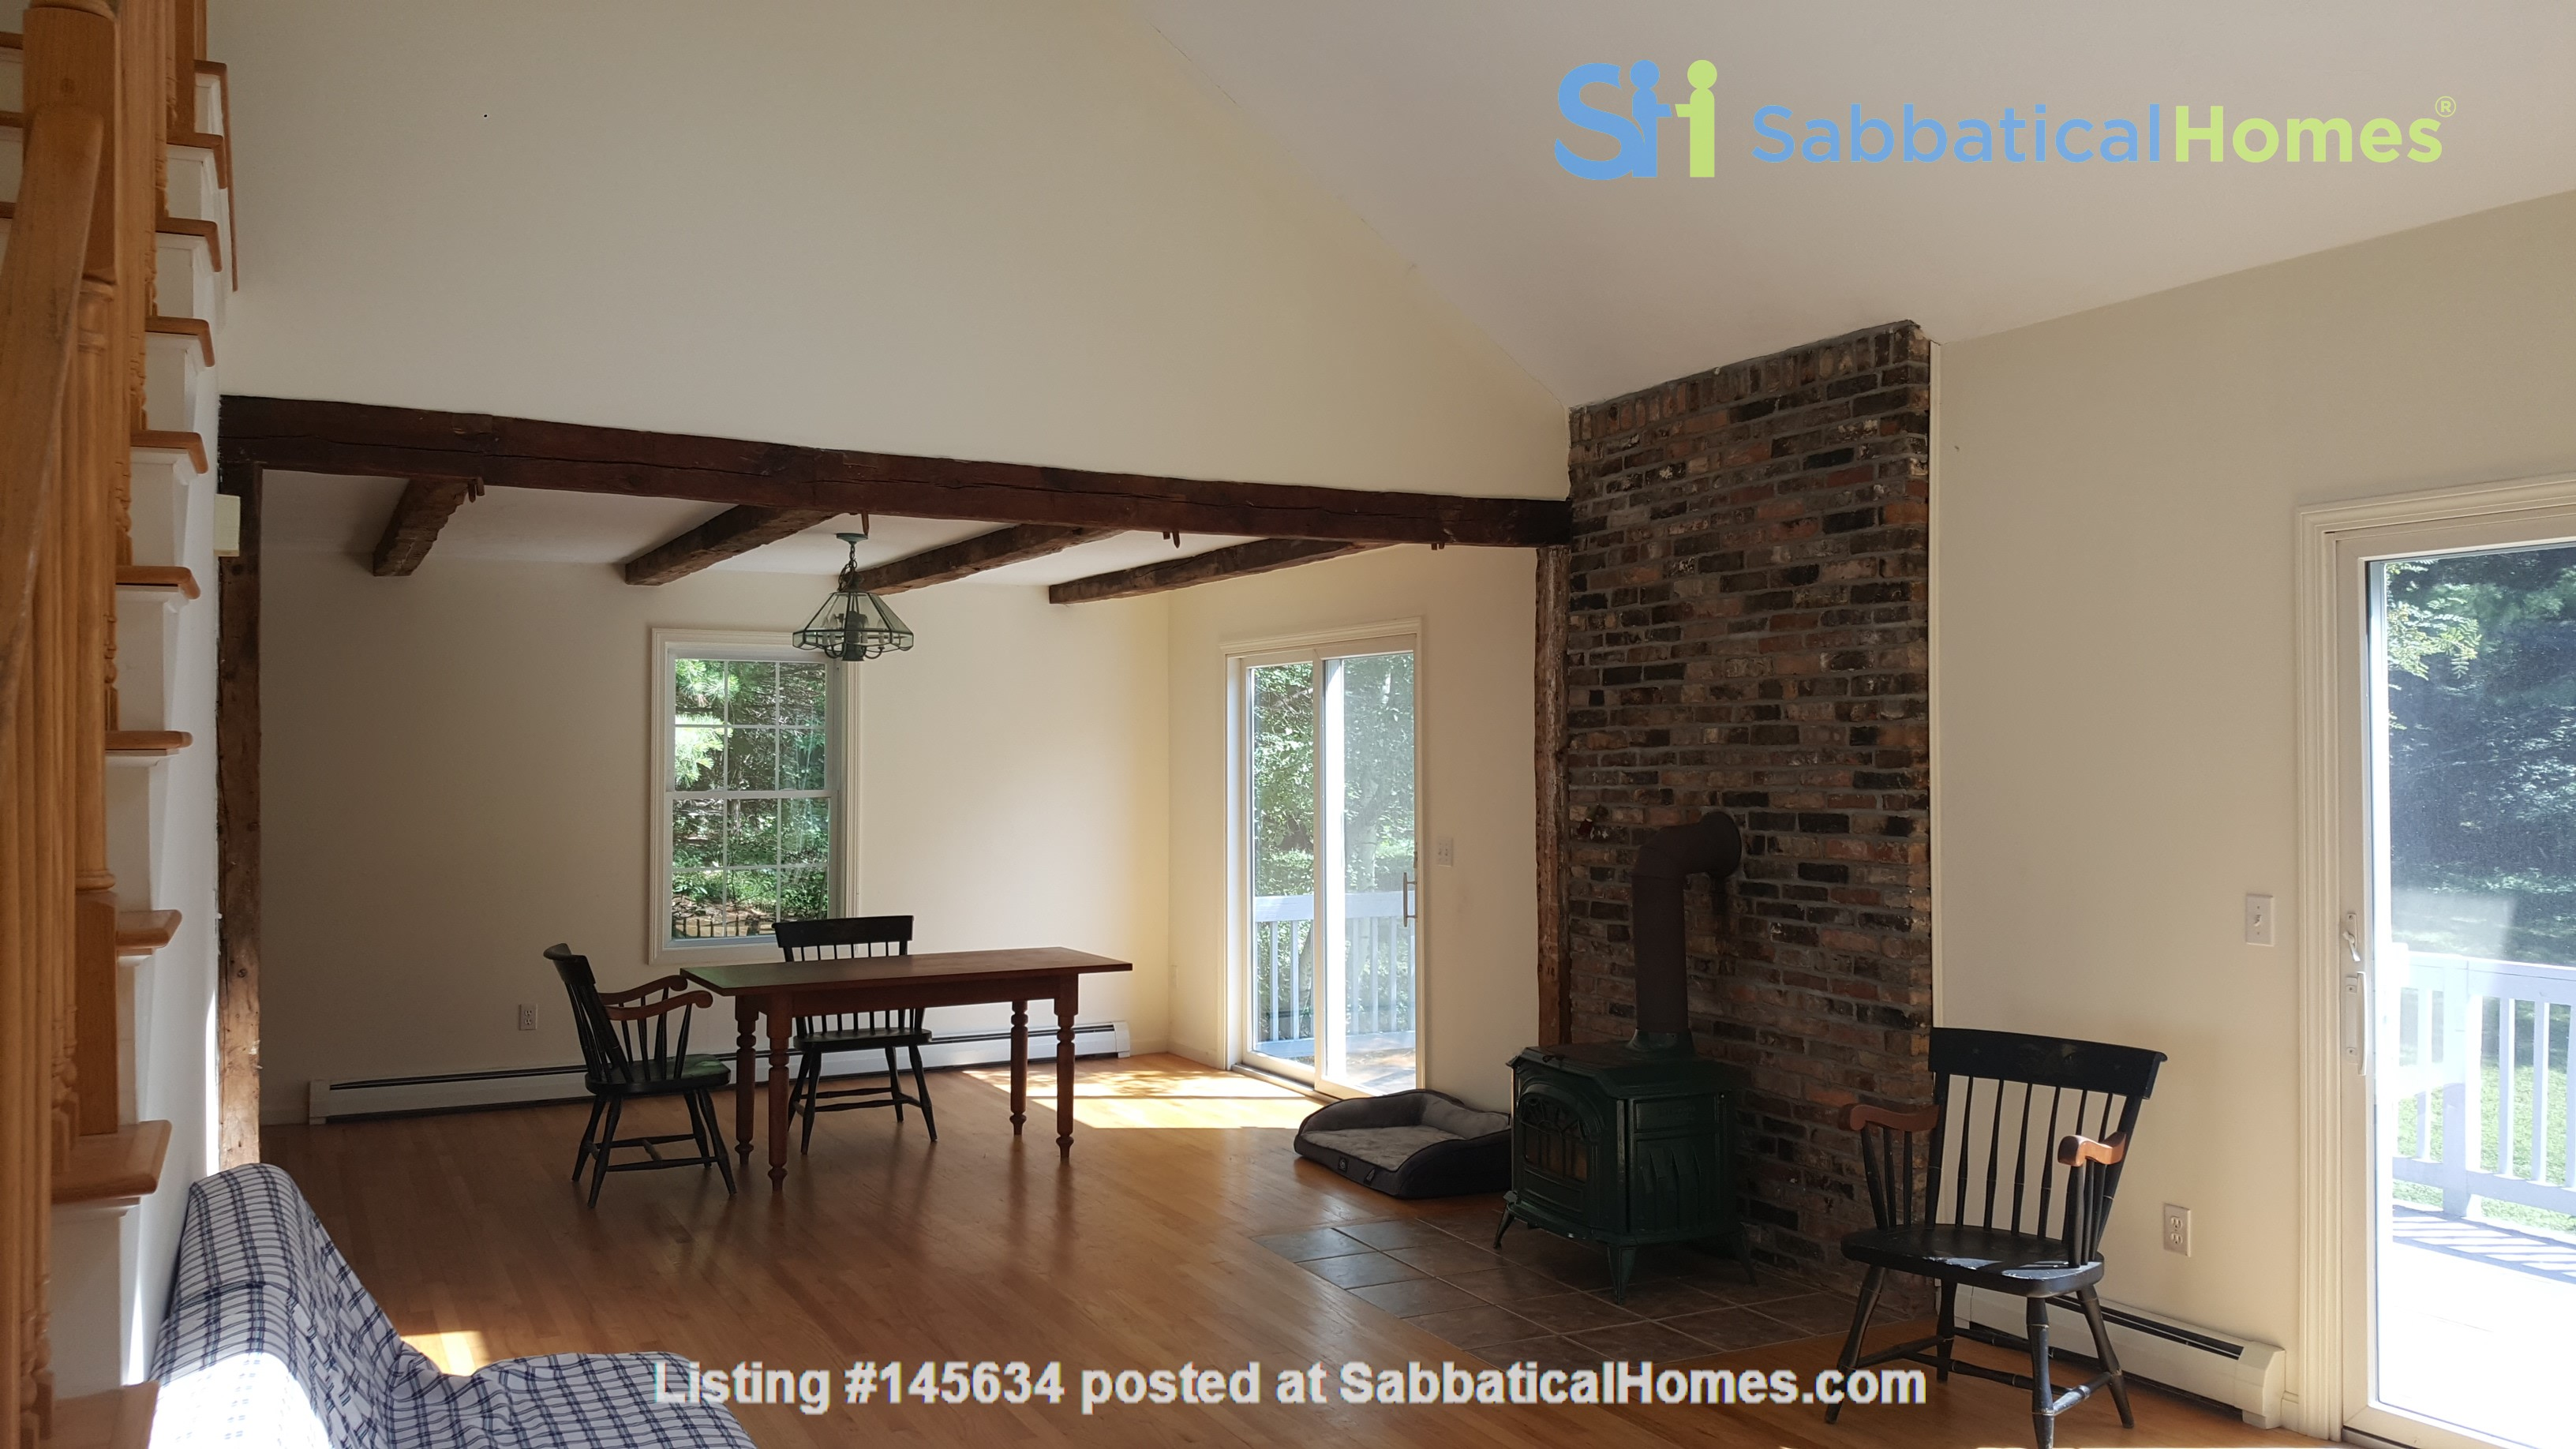 2 bedroom country house / 25 miles North of Boston and Cambridge Home Rental in Andover, Massachusetts, United States 1